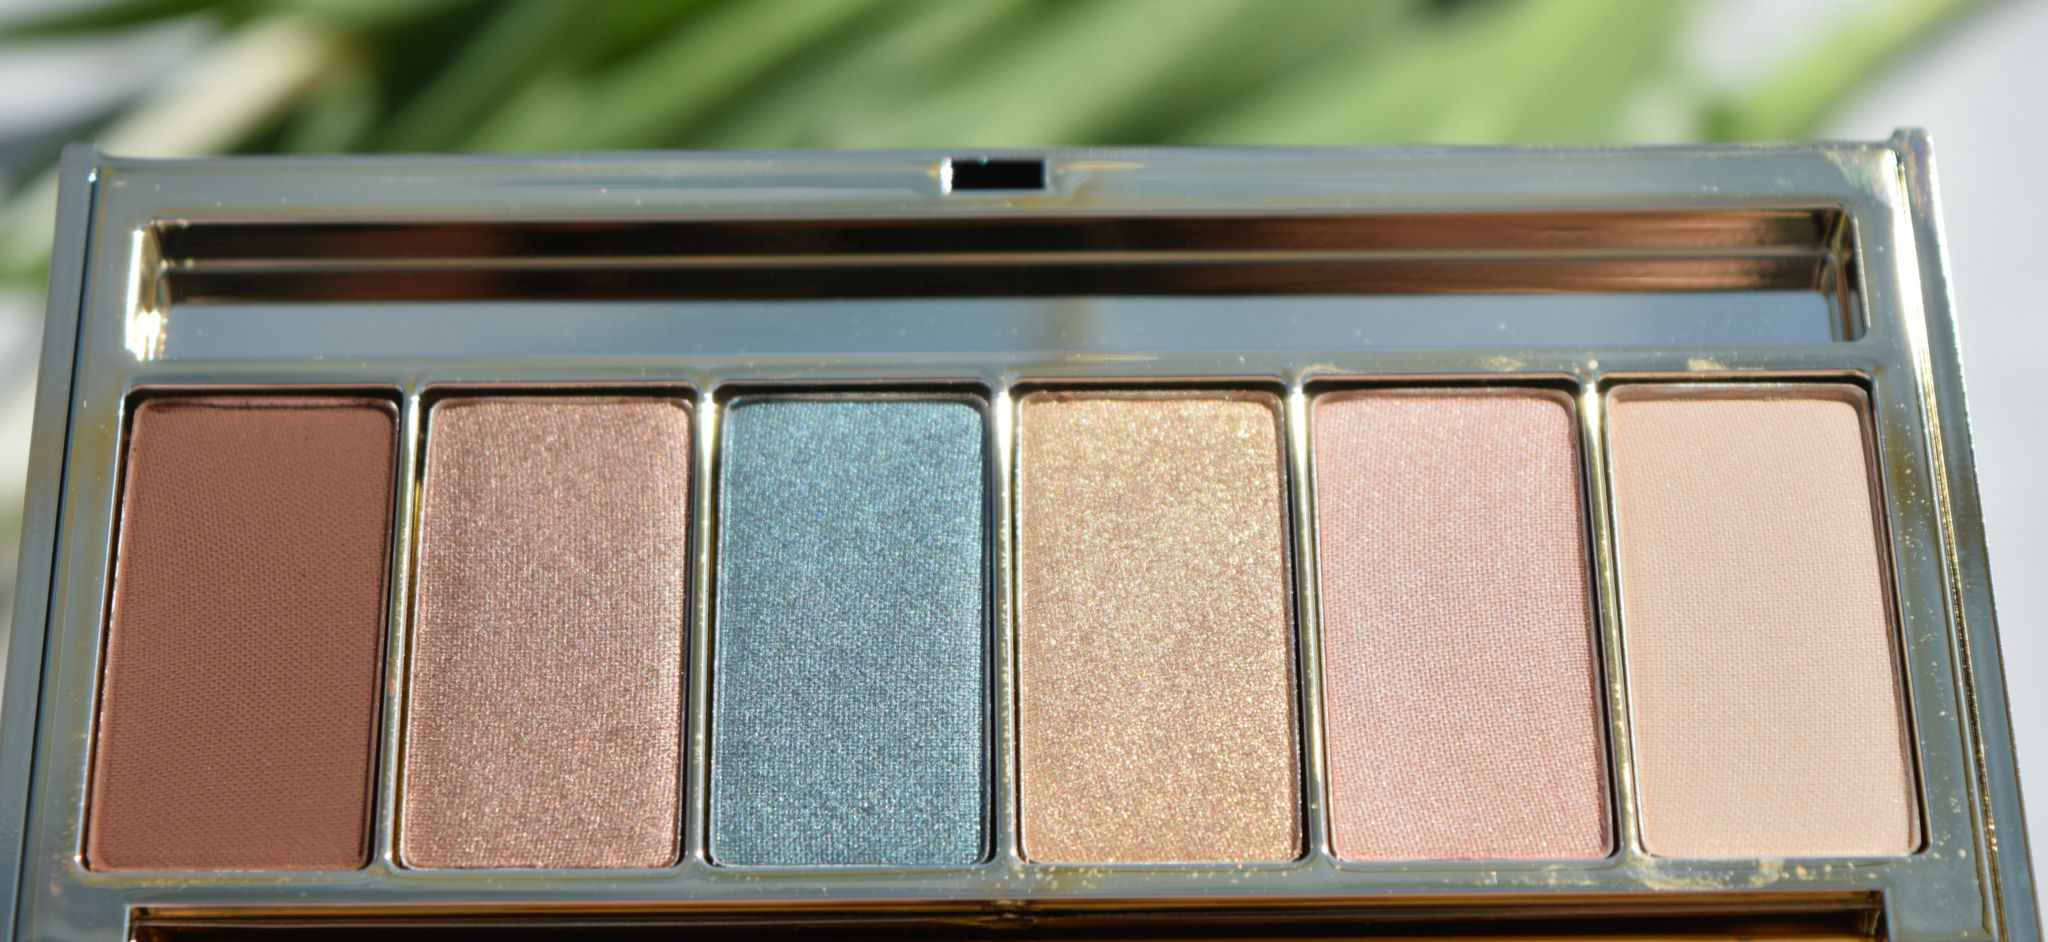 Estee Lauder Bronze Goddess Eyeshadow Palette review